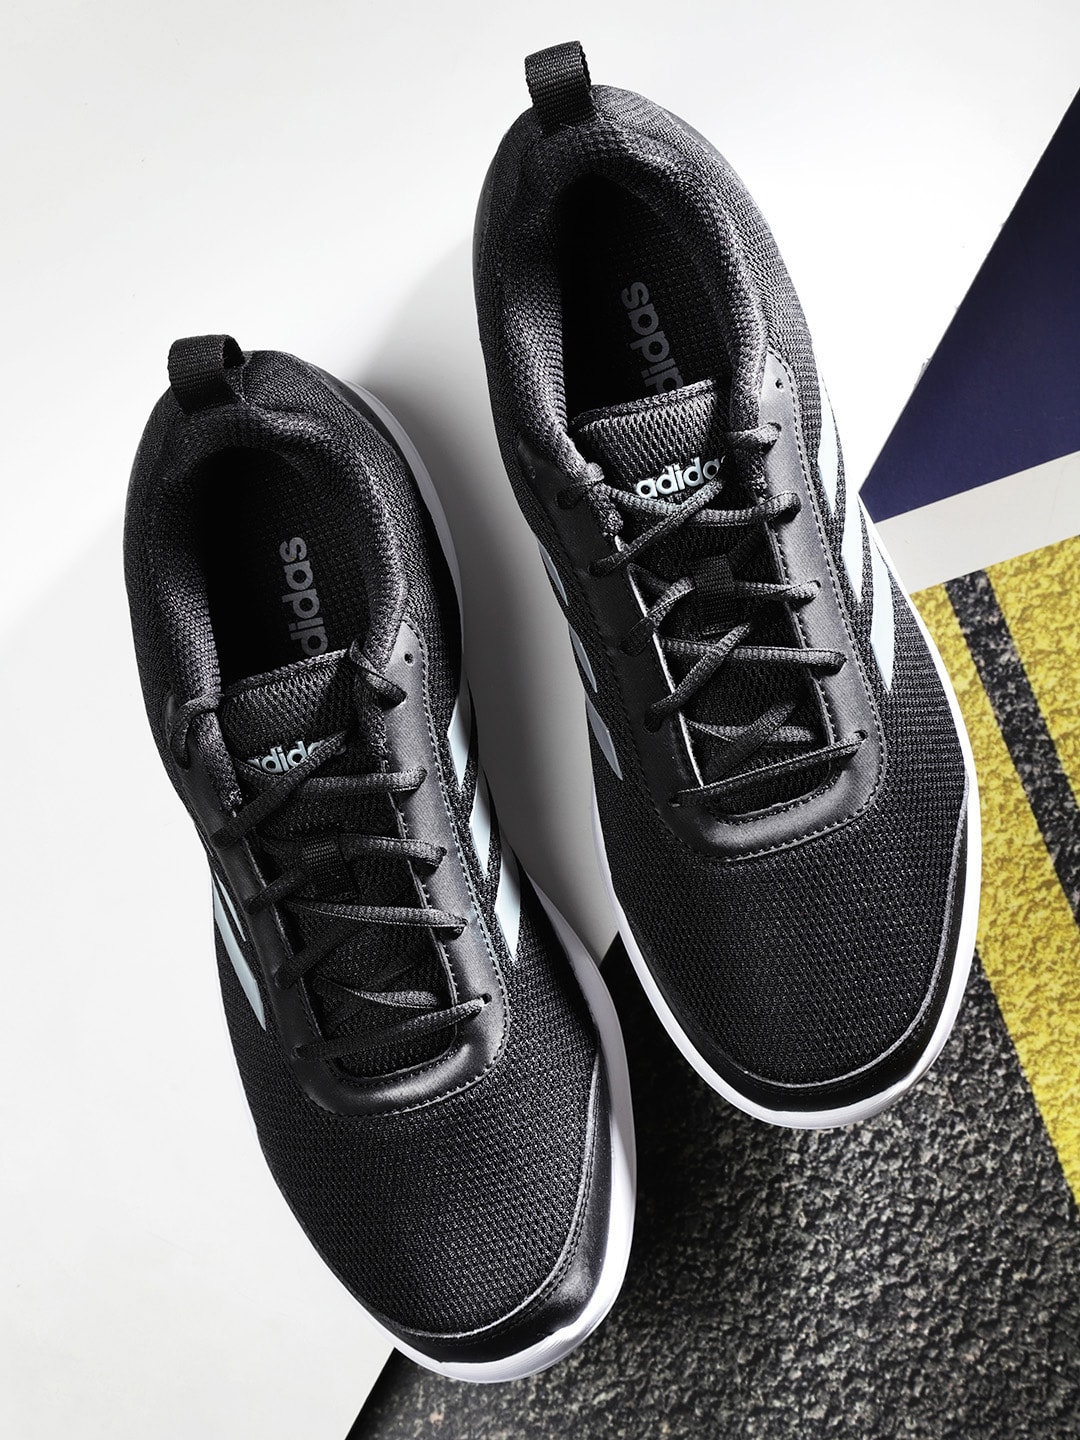 c7d8714c31 adidas - Exclusive adidas Online Store in India at Myntra